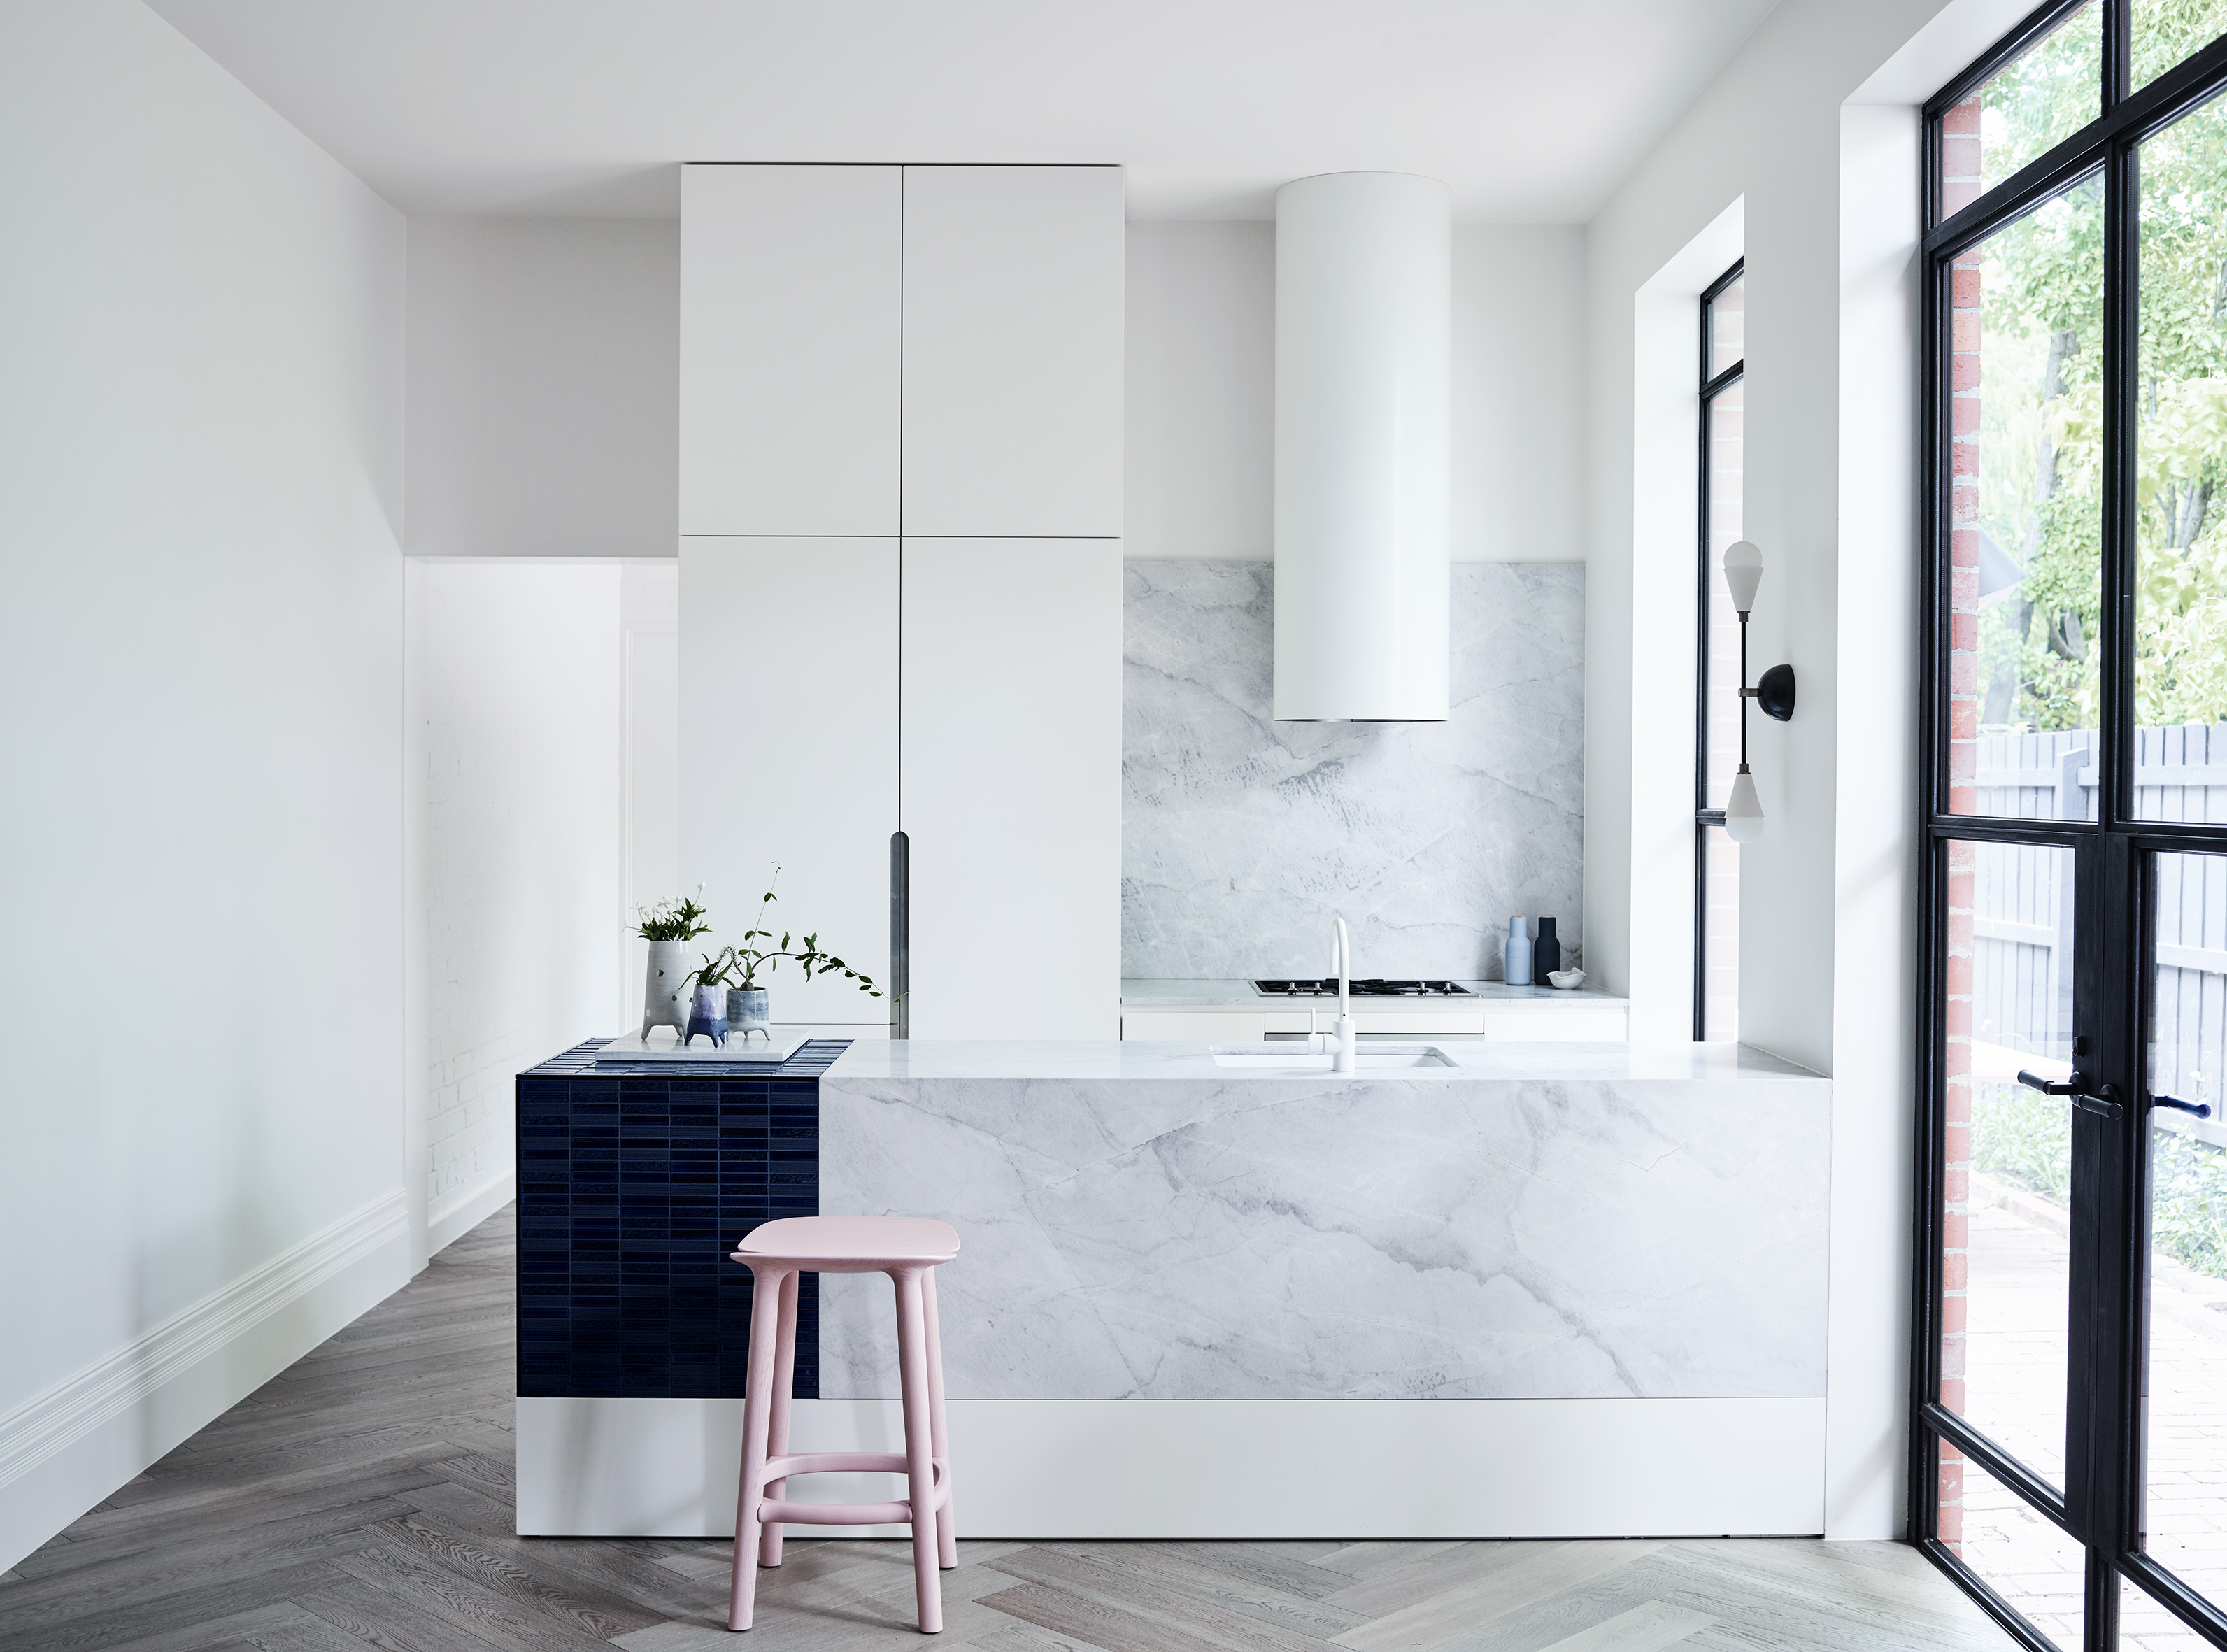 Benchtop Melbourne Choosing The Best Kitchen Benchtop Material Caesarstone Natural